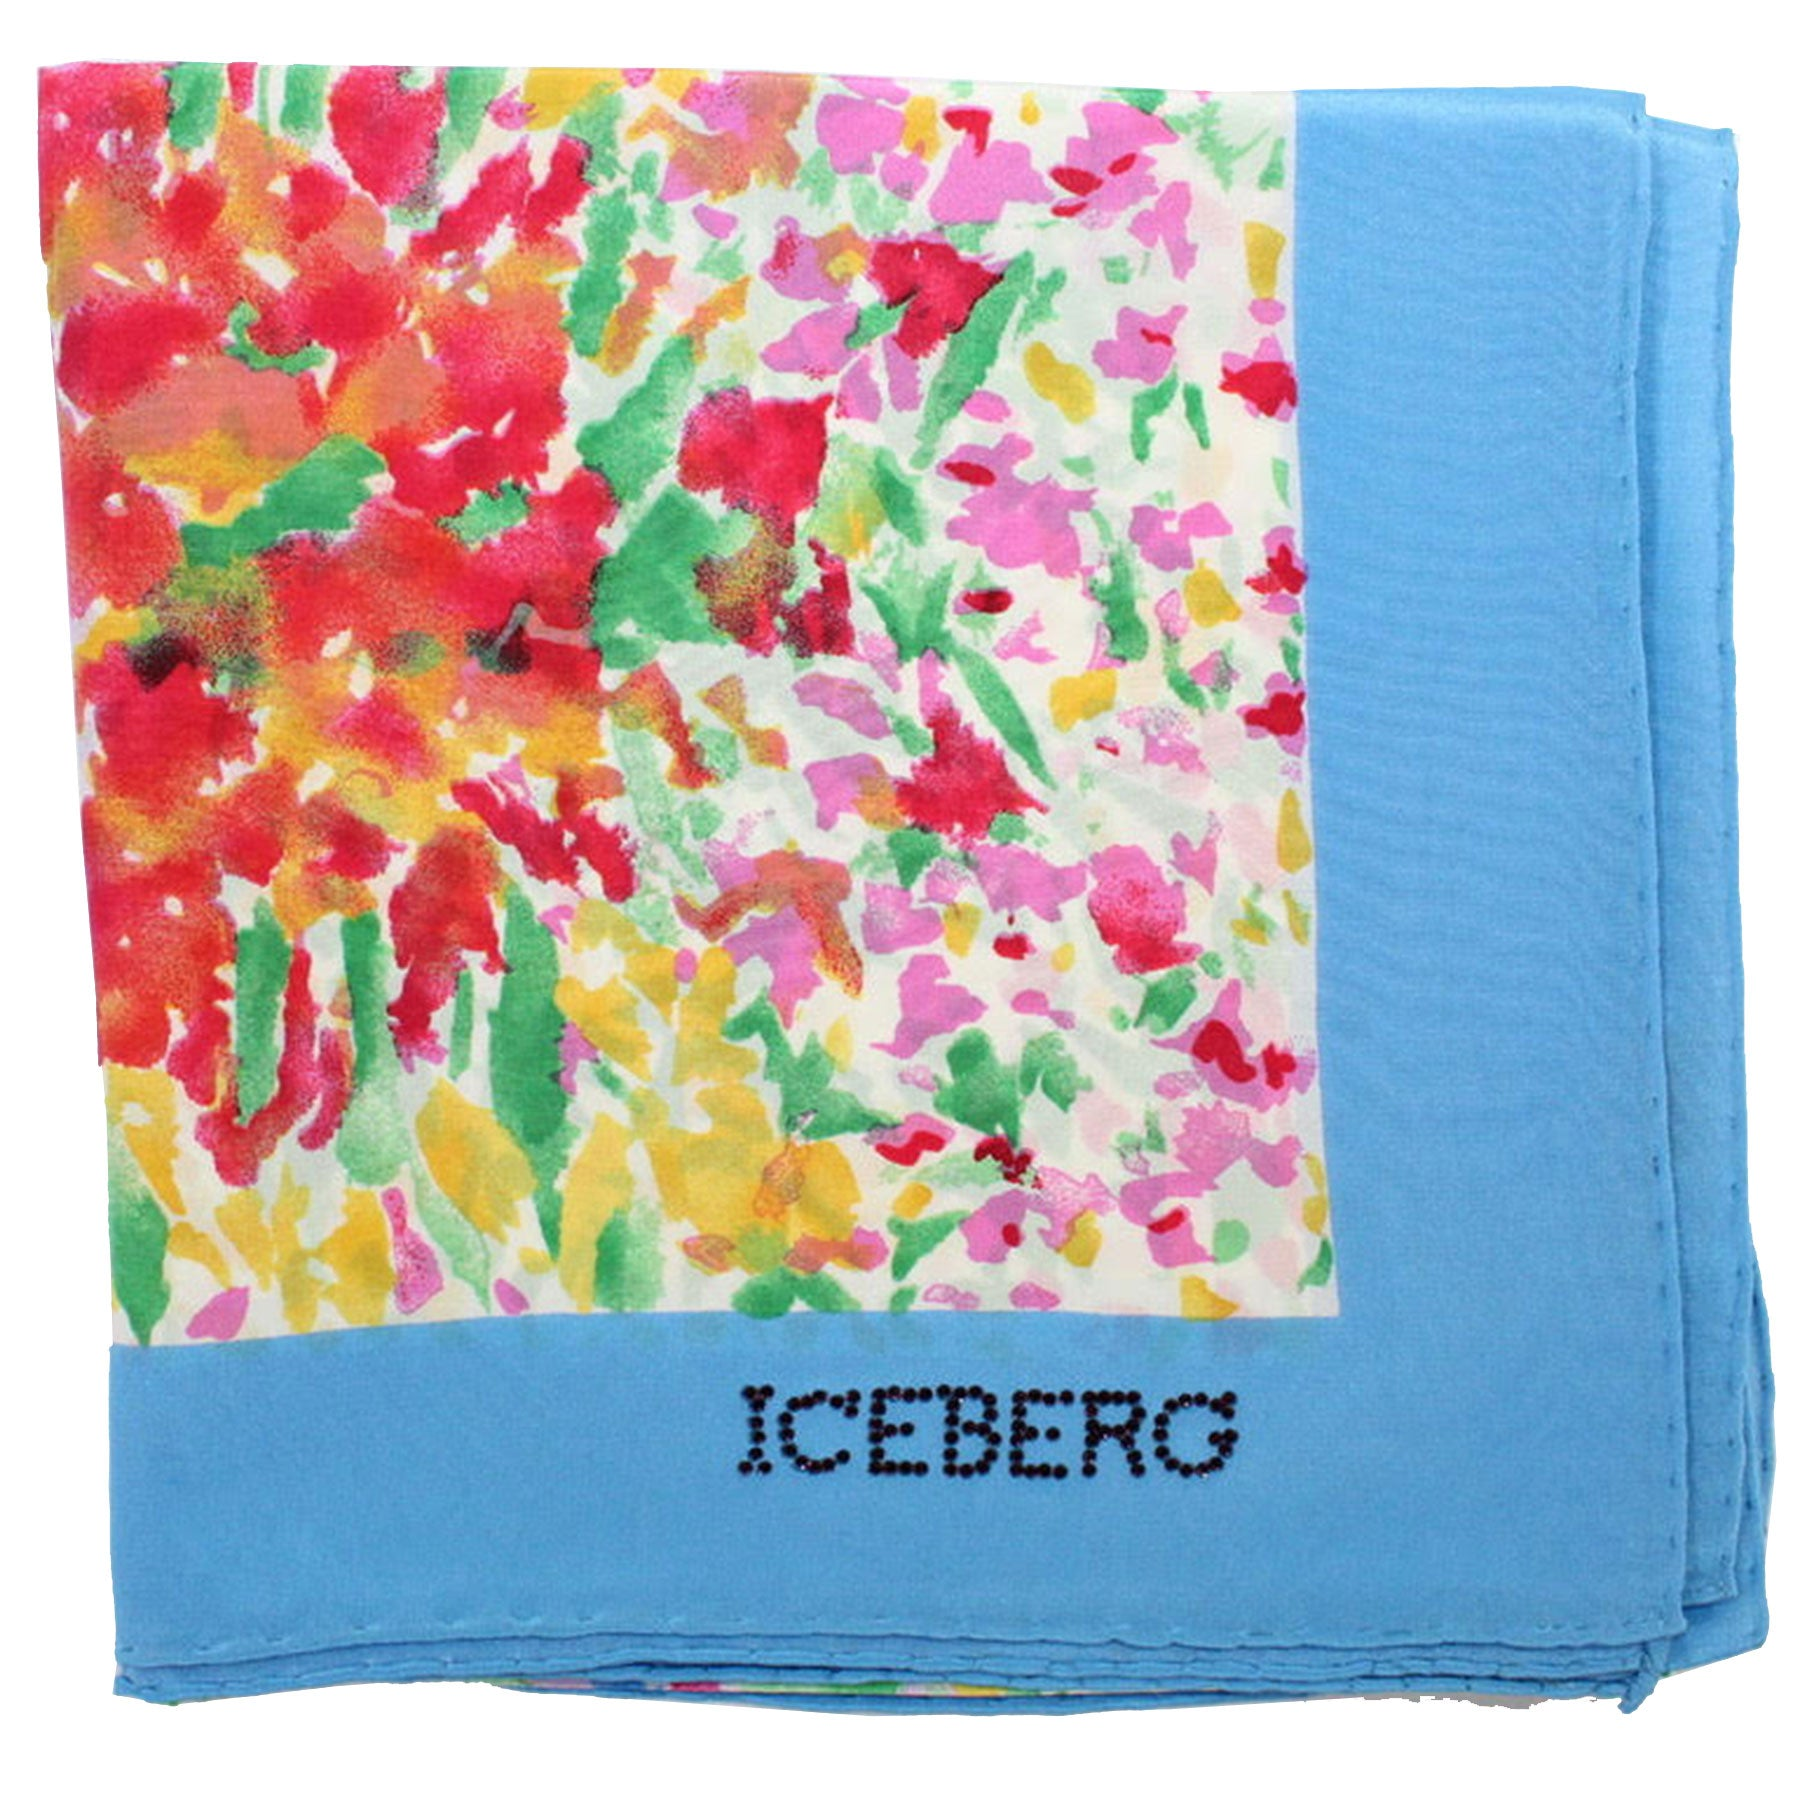 Iceberg Scarf Blue Multi Colored Floral Design - Large Silk Square Foulard